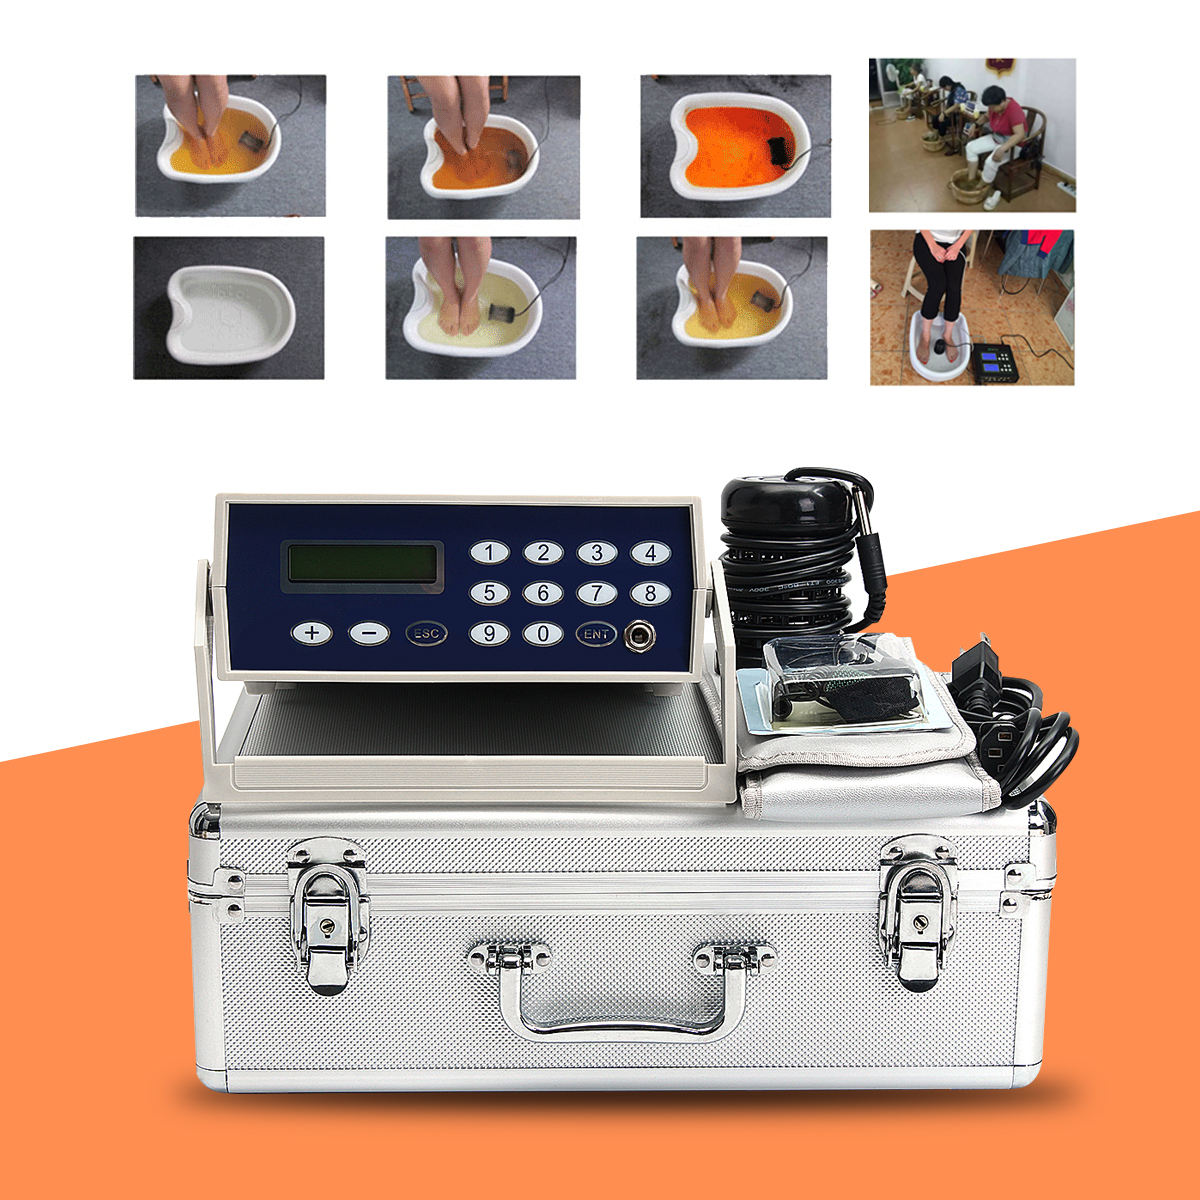 Detox foot care Machine Cell Ion Ionic Aqua Foot Bath SPA Cleanse Machine Fir Belt Box CAN foot bath massage pain relief machine detox ion cleanse machine ionic foot spa bath infrared belt for two people use free shipping